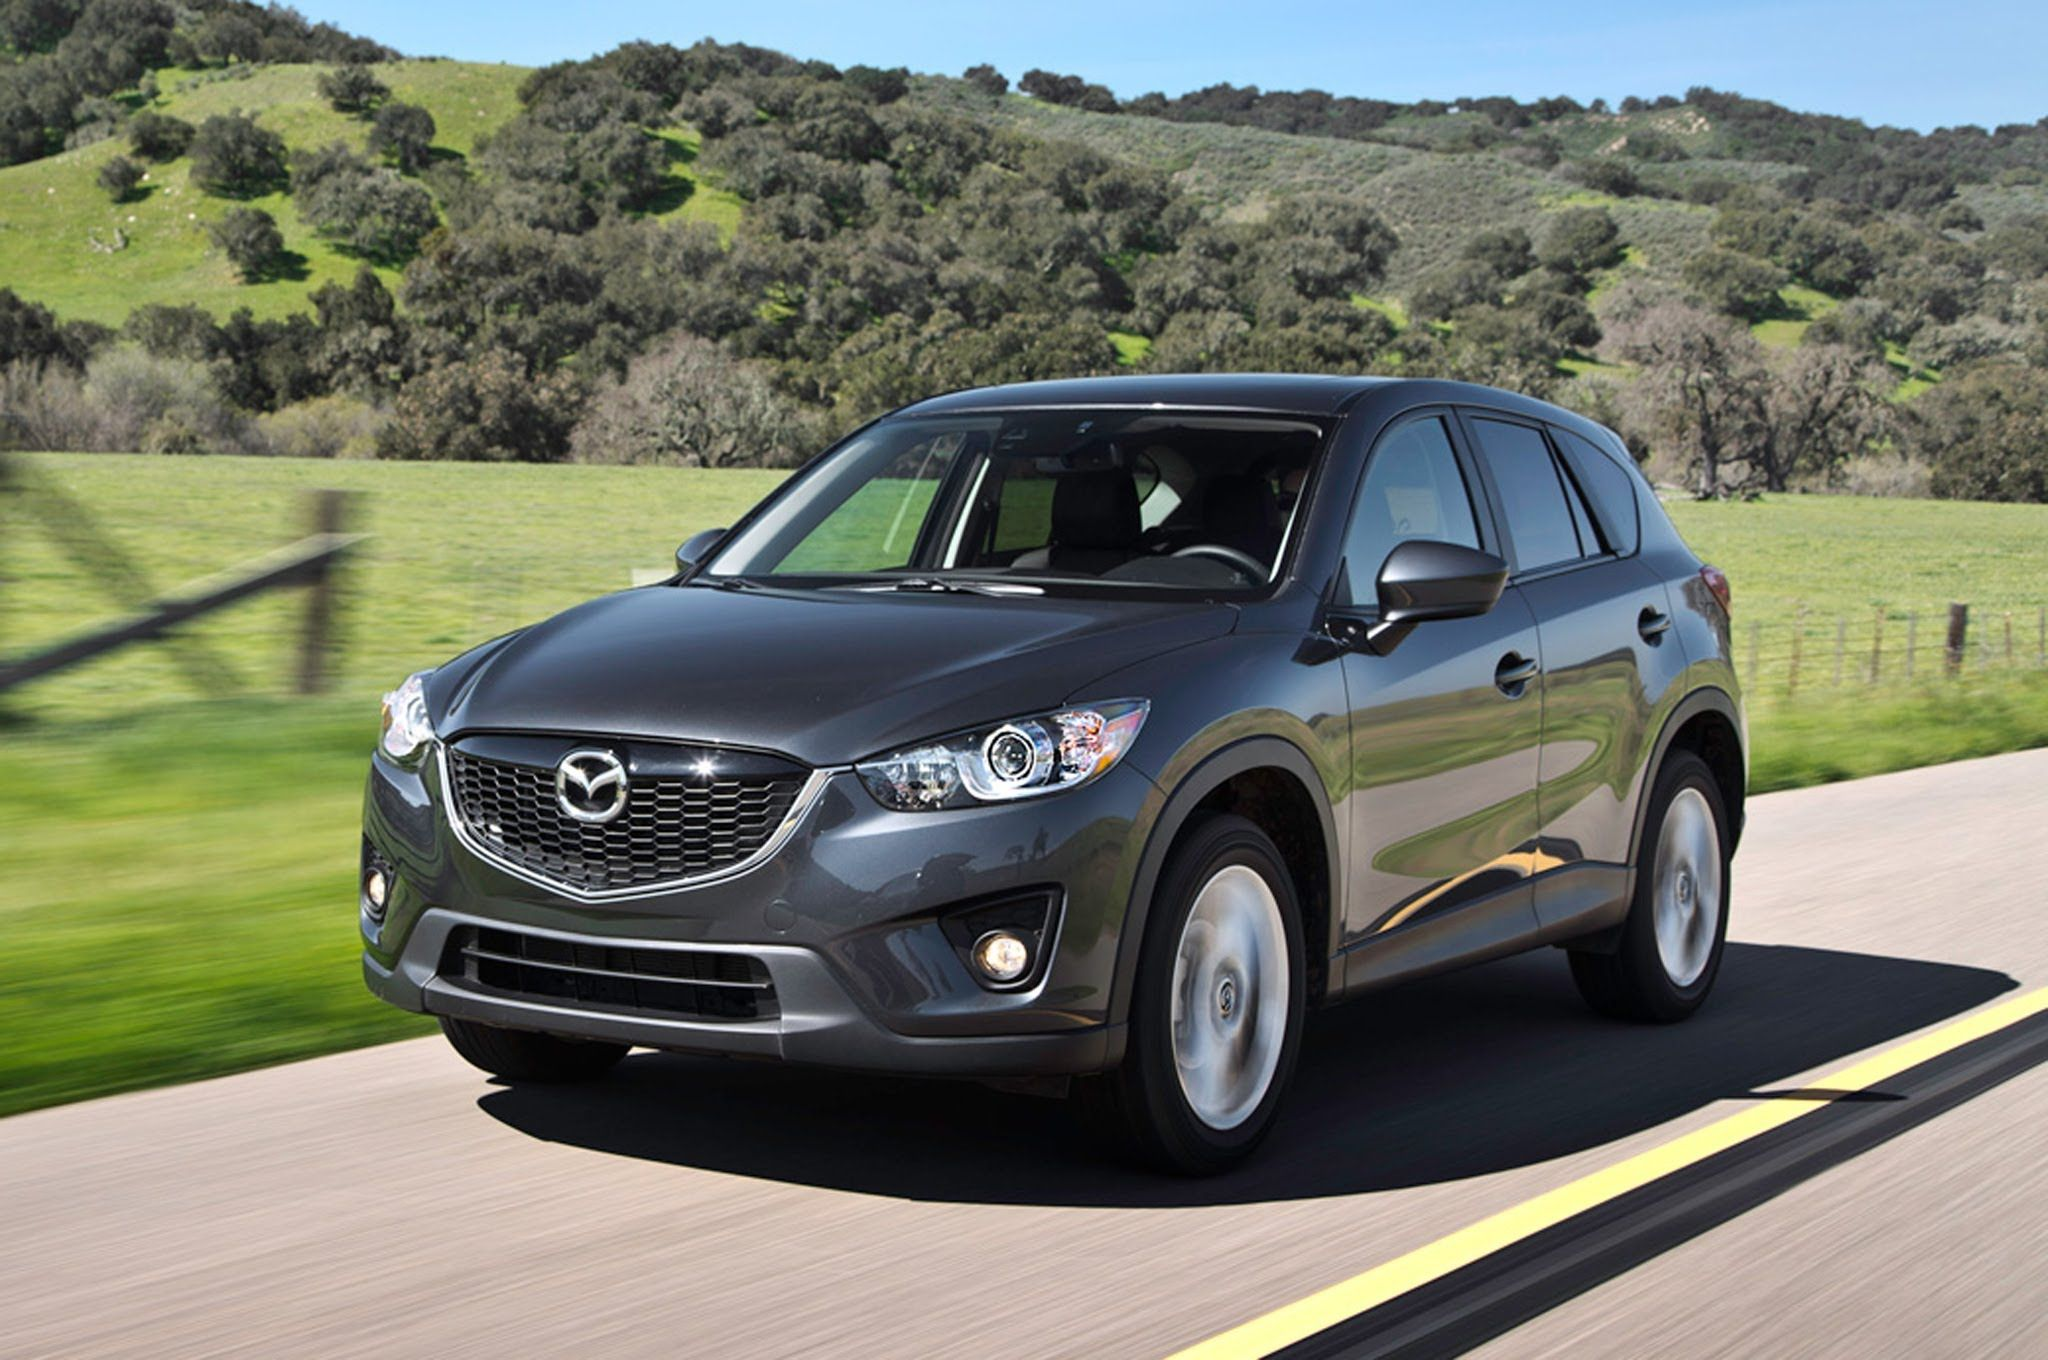 2015 Mazda CX 5 Grand Touring Review & Test Drive